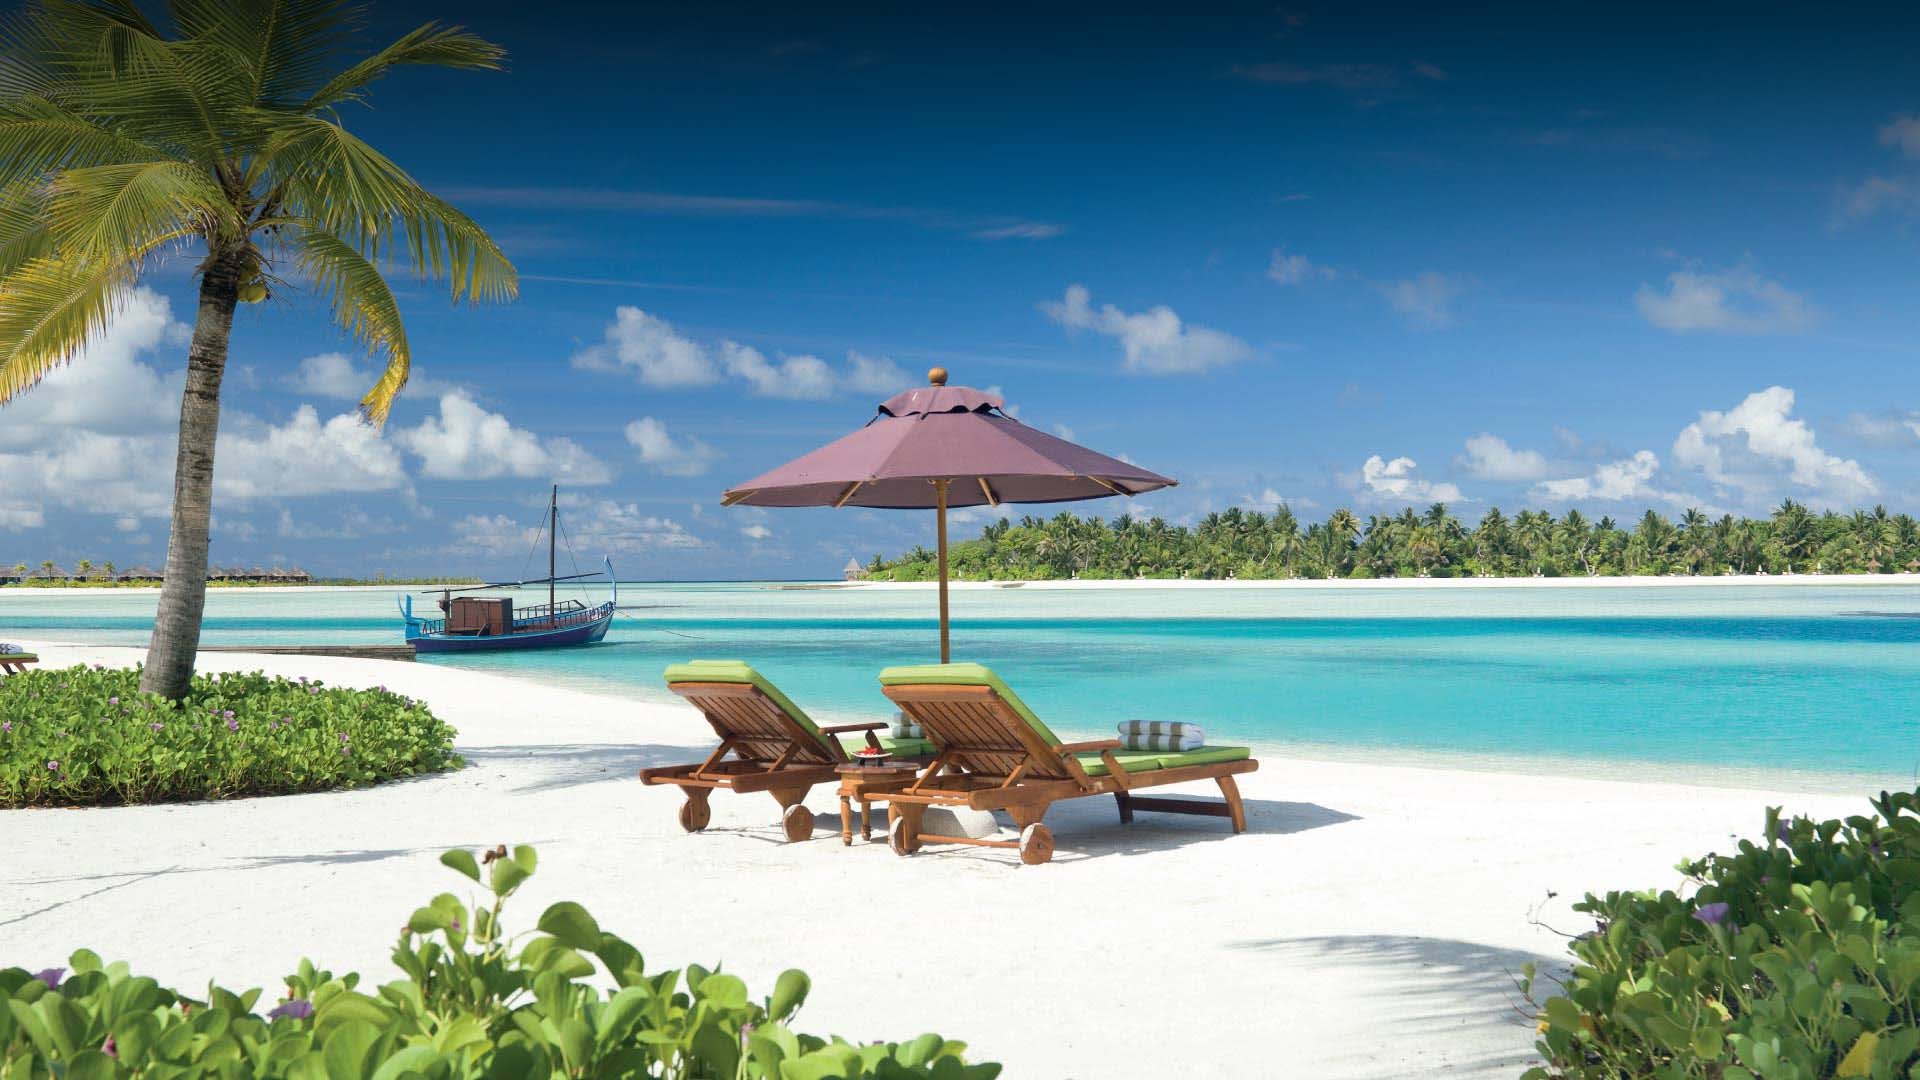 https://assets.anantara.com/image/upload/q_auto,f_auto/media/minor/anantara/images/naladhu-private-island-maldives/the-resort/desktop-banner/naladhu_private_island_beach_and_lagoon_header_1920x1080.jpg